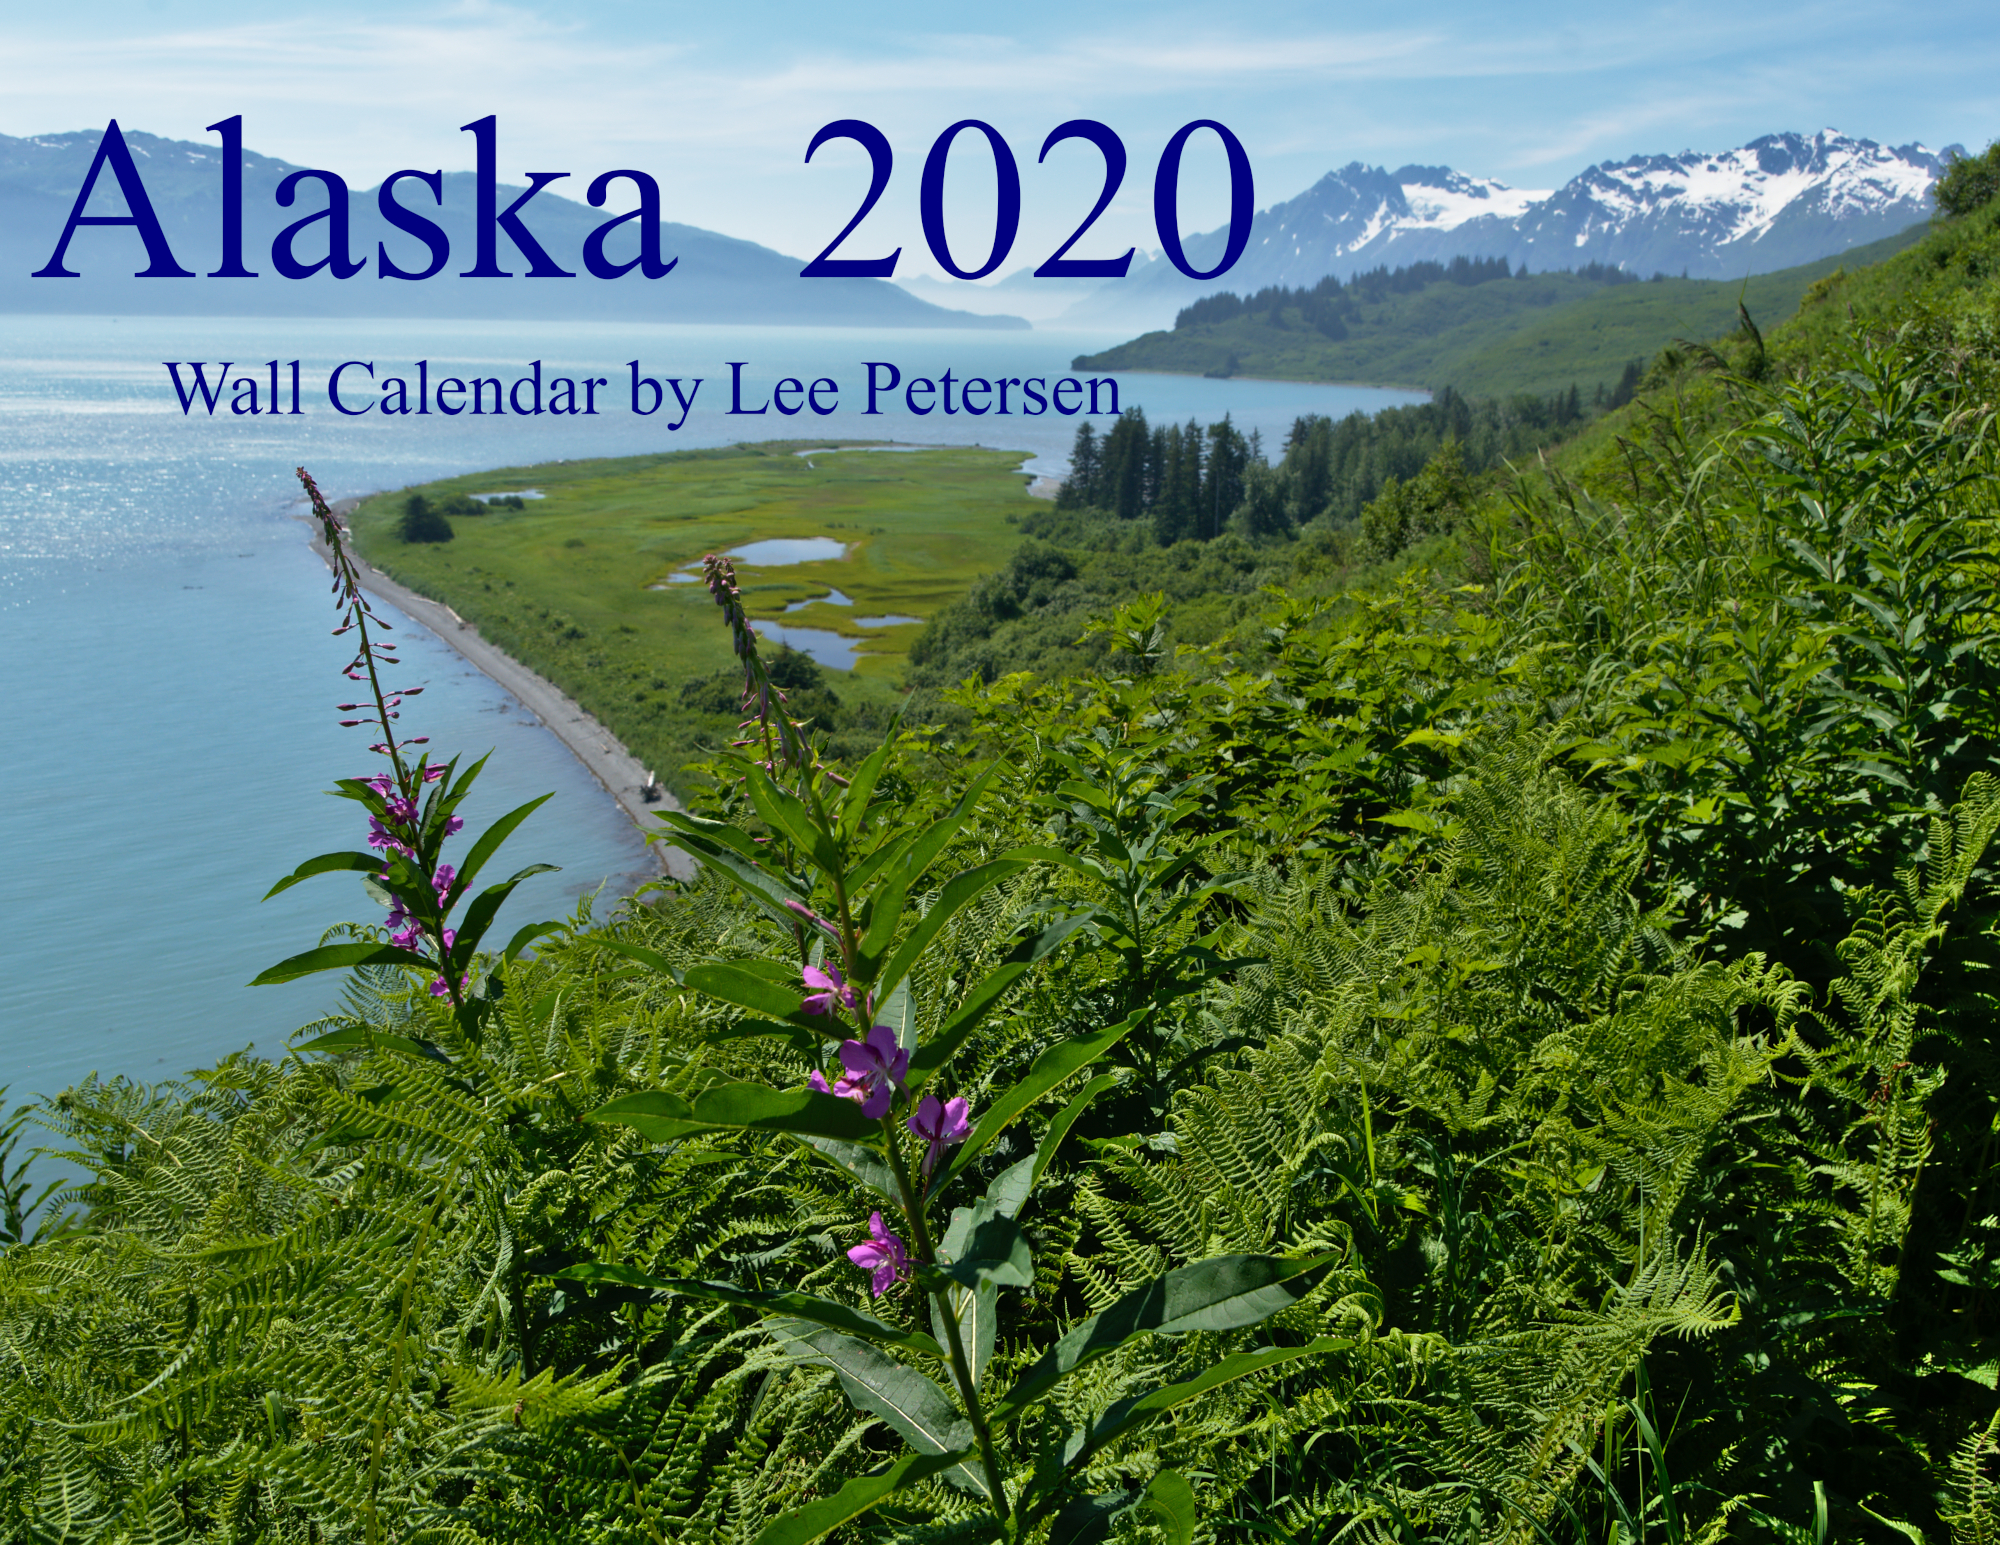 2020 Alaska Wall Calendar by Lee Petersen